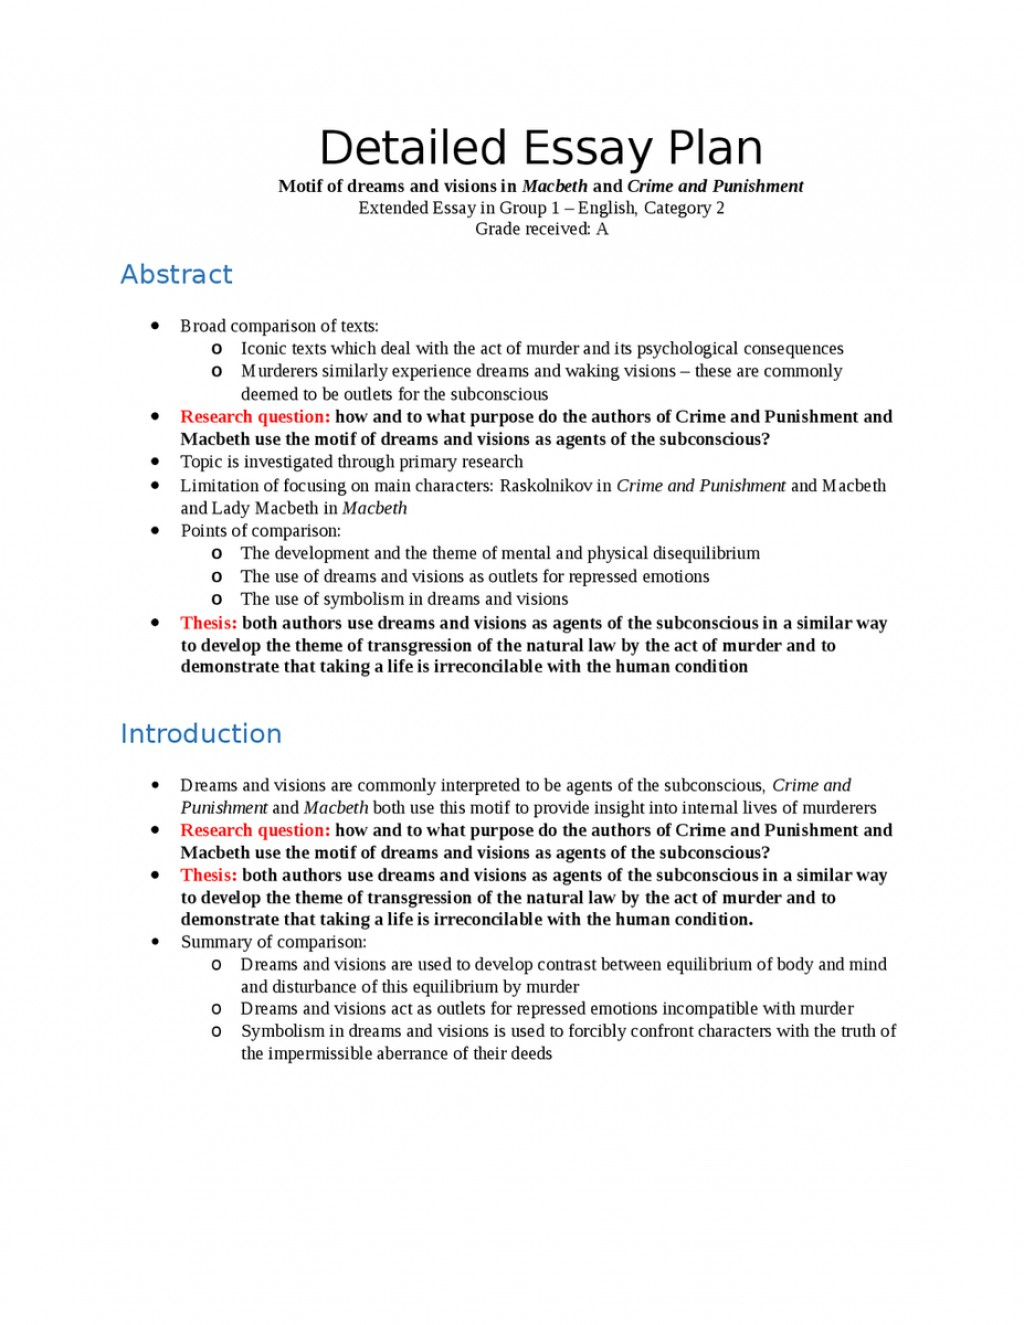 008 Essay Example About Dreams Crime Essays Law Help Of Juvenile Argumentative Abortion Should Permitted Extended Plan  And Visions In Macbeth P Stirring Aspirations Life Goals Come TrueLarge